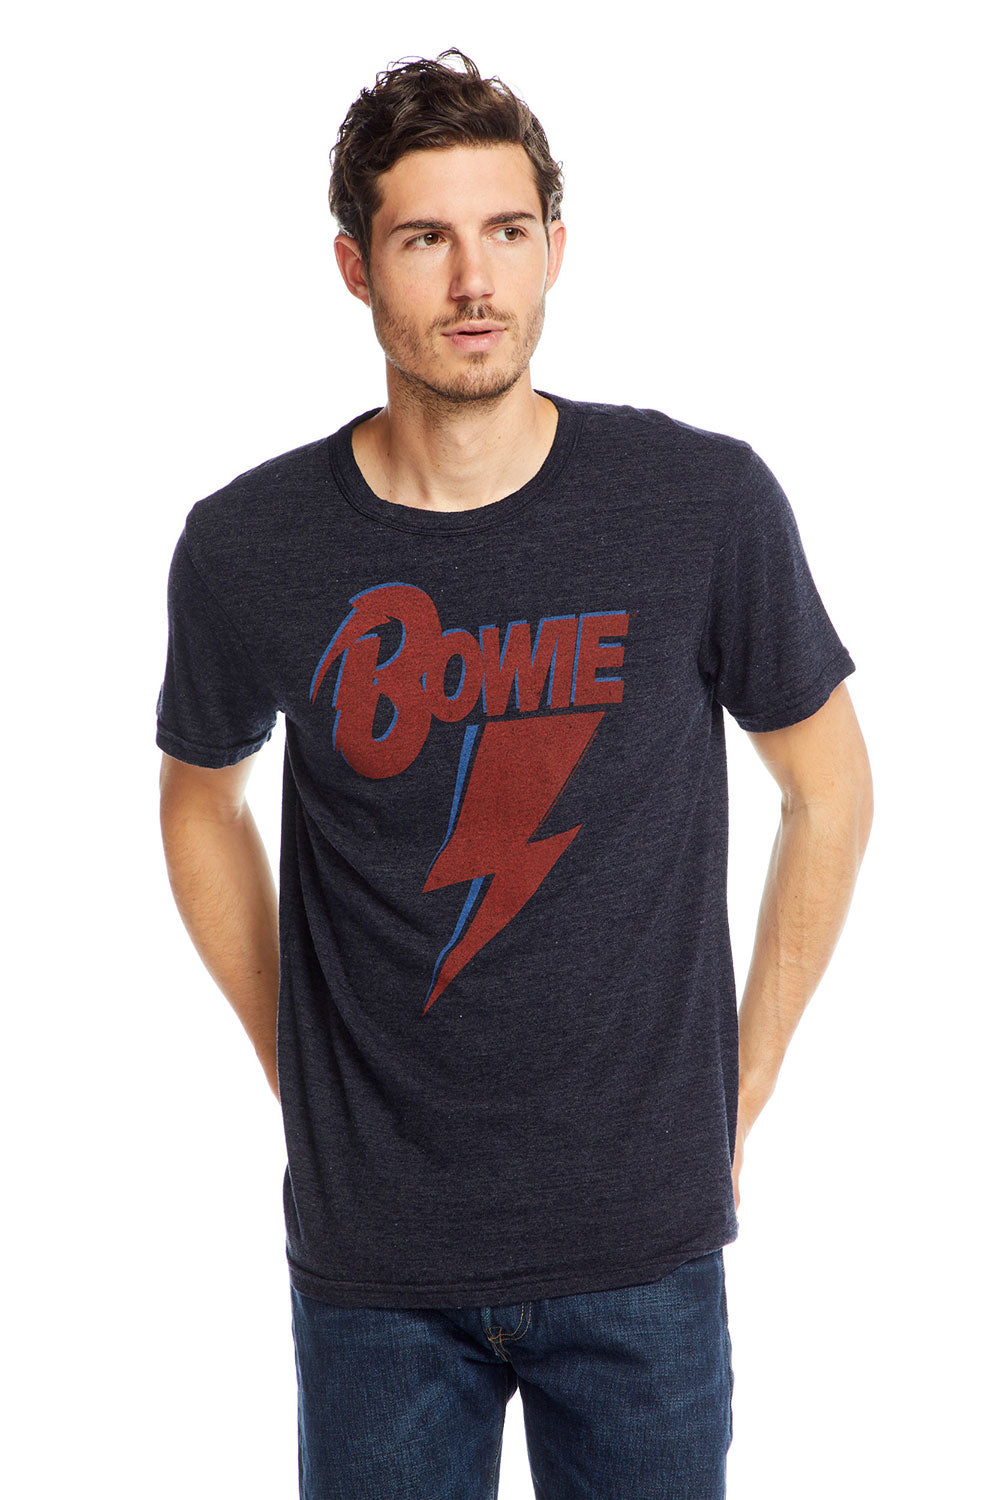 David Bowie - Bowie Bolt MENS - chaserbrand